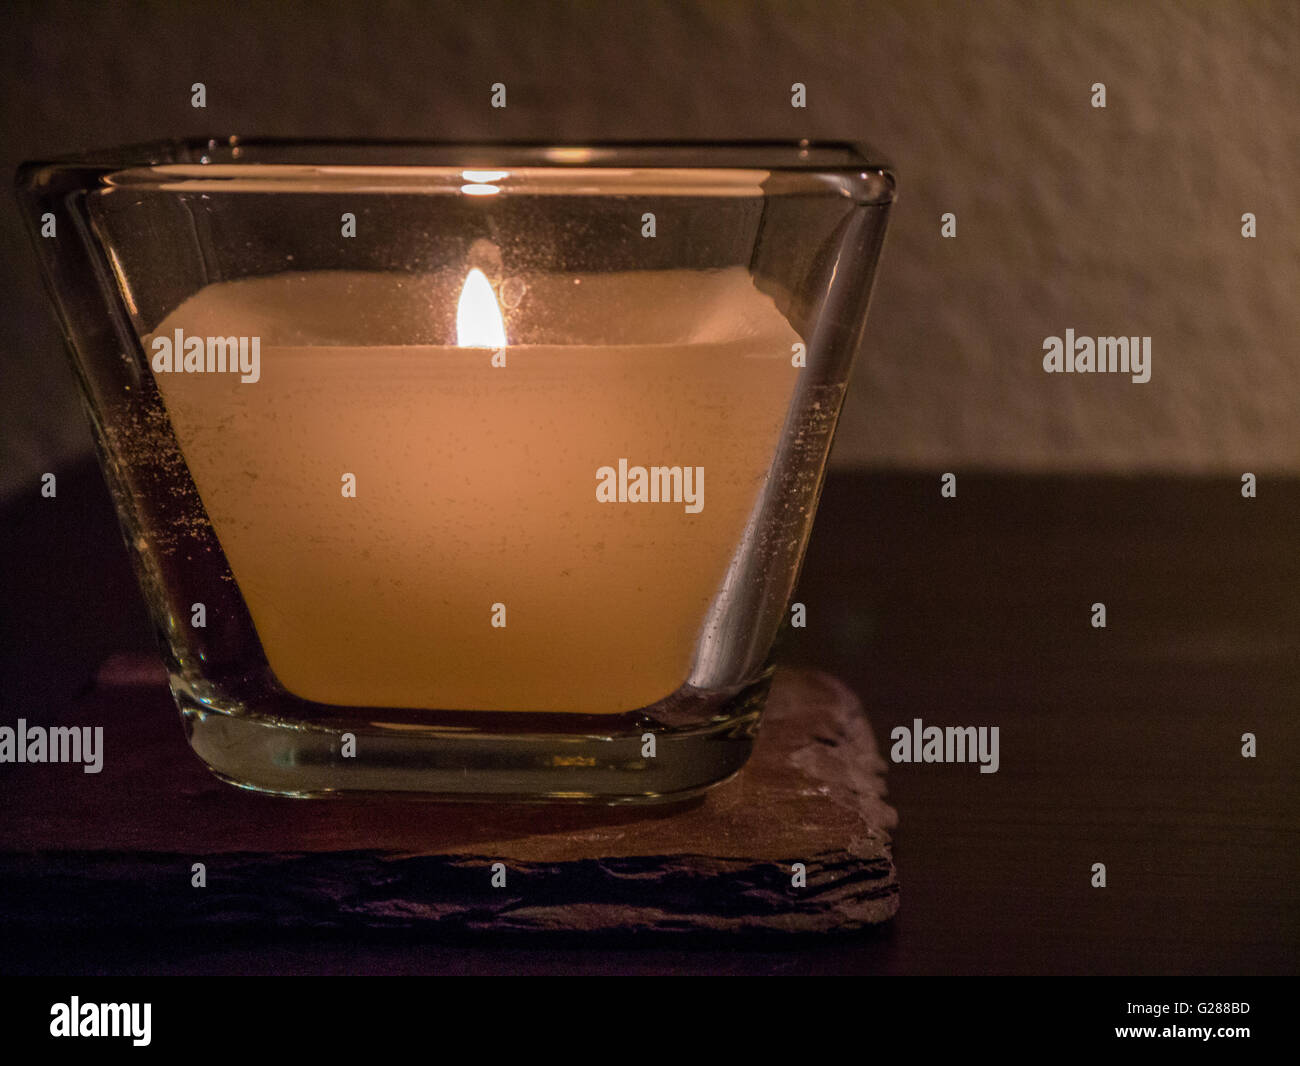 Single candle in glass holder, neutral background - Stock Image